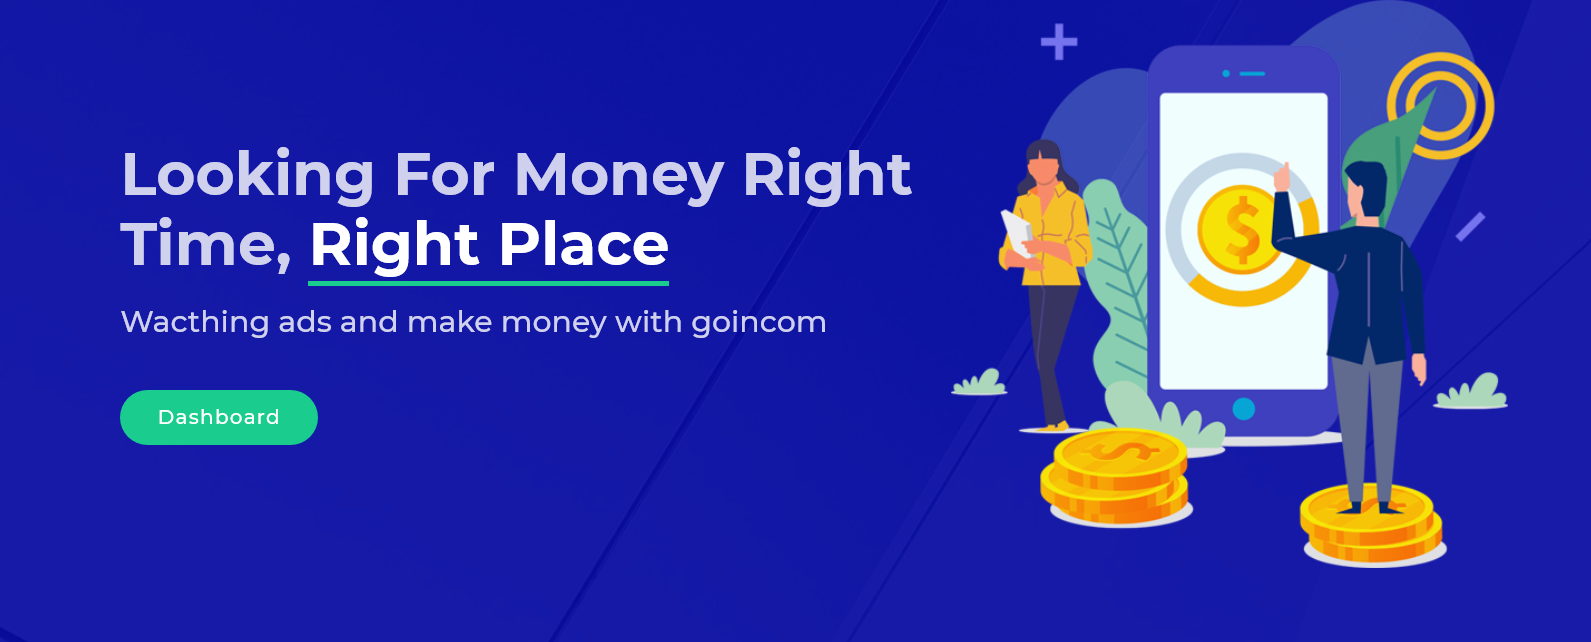 goincom.com Reviews - SCAM or PAYING?